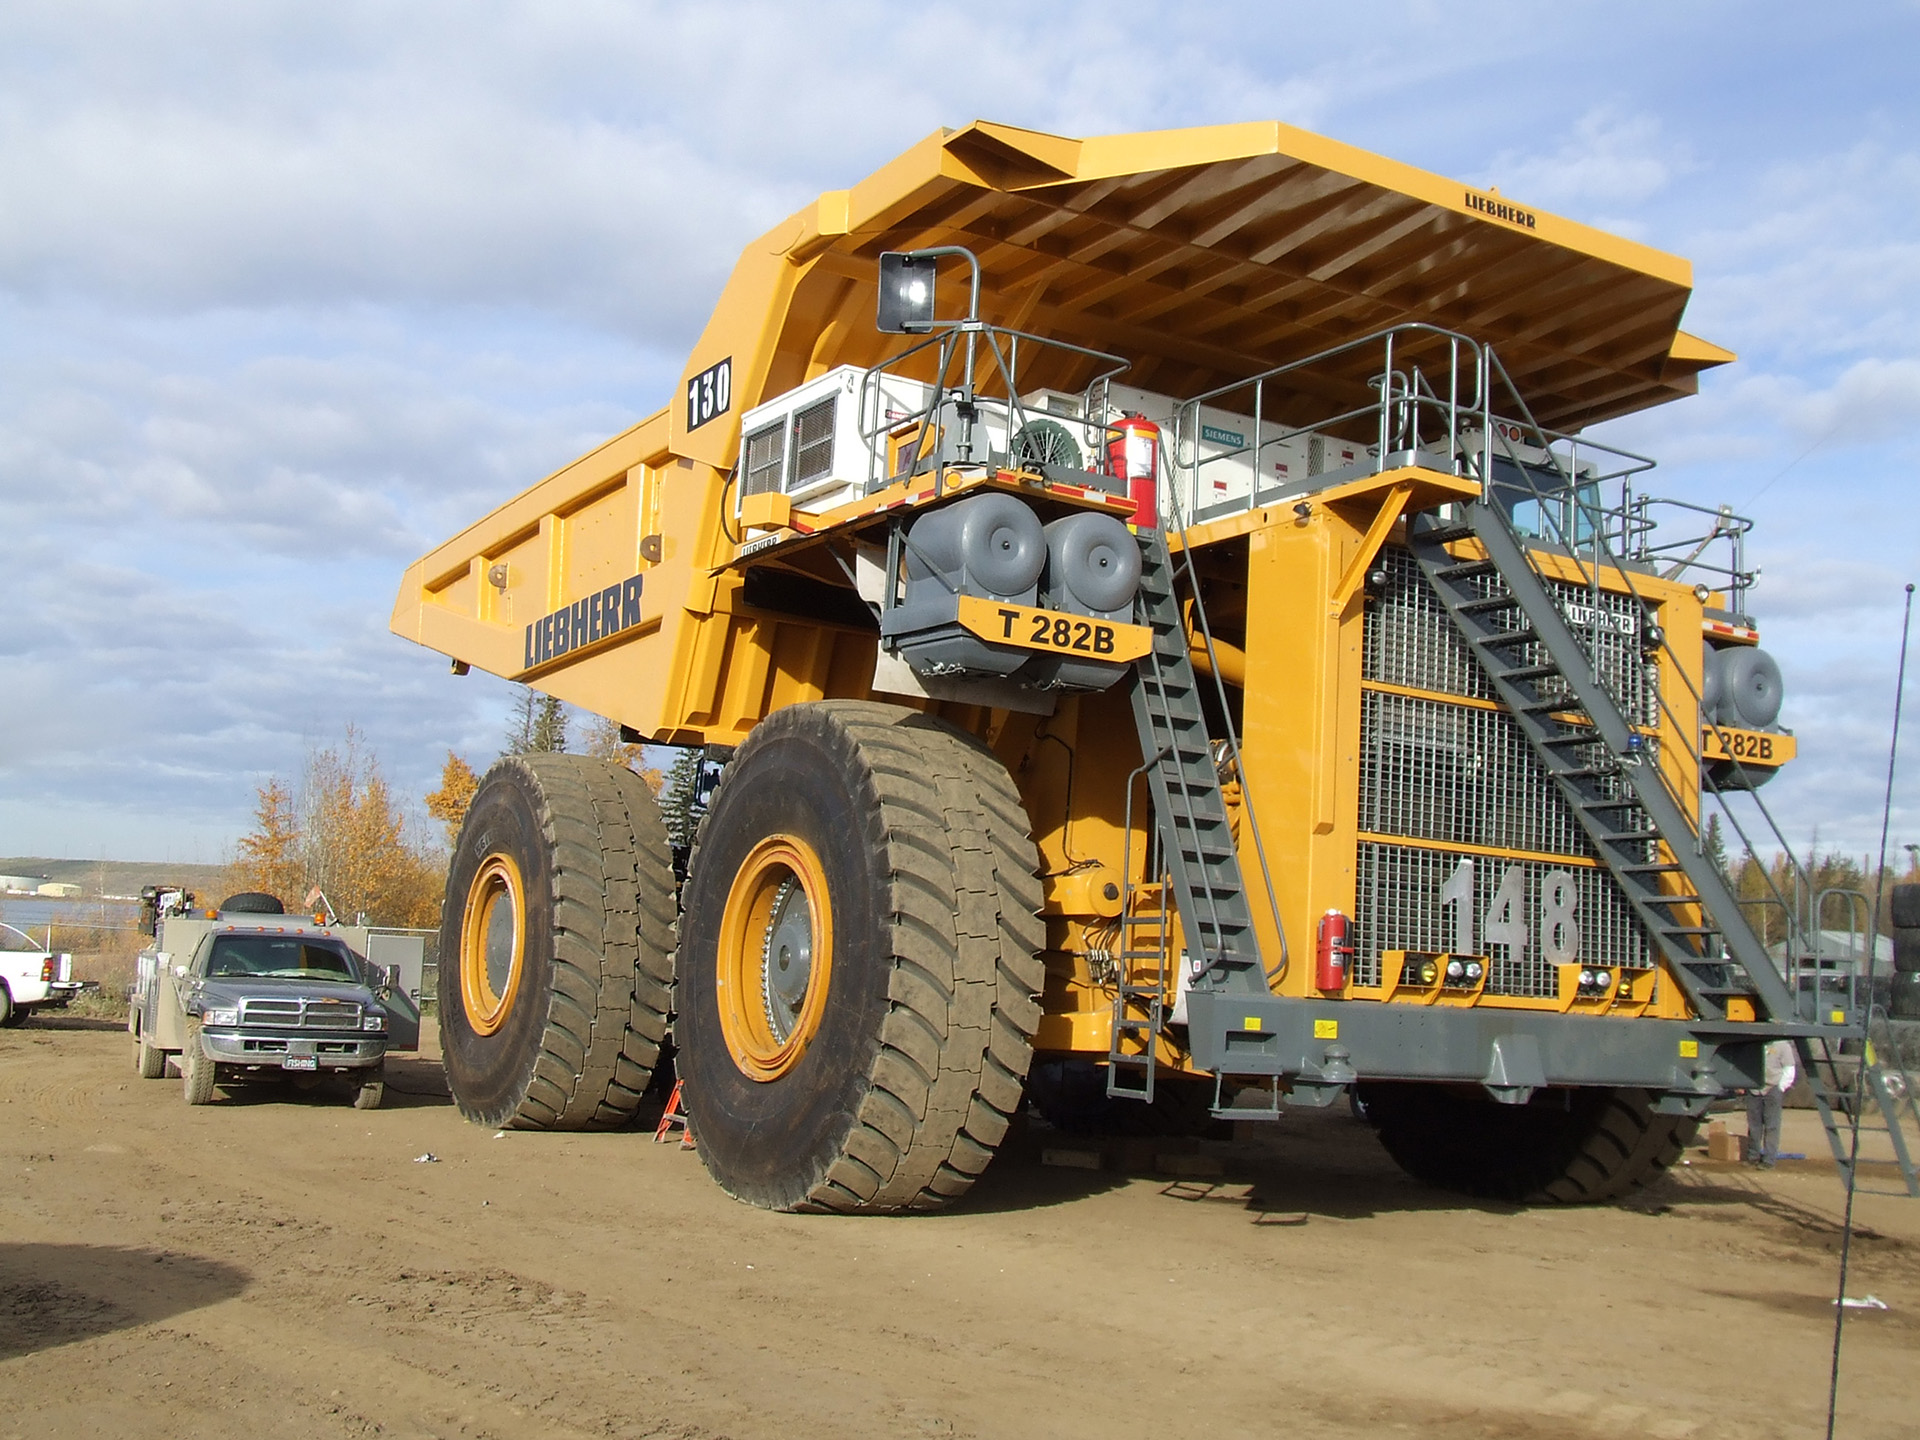 Liebherr T 282 B Photos Photogallery With 12 Pics